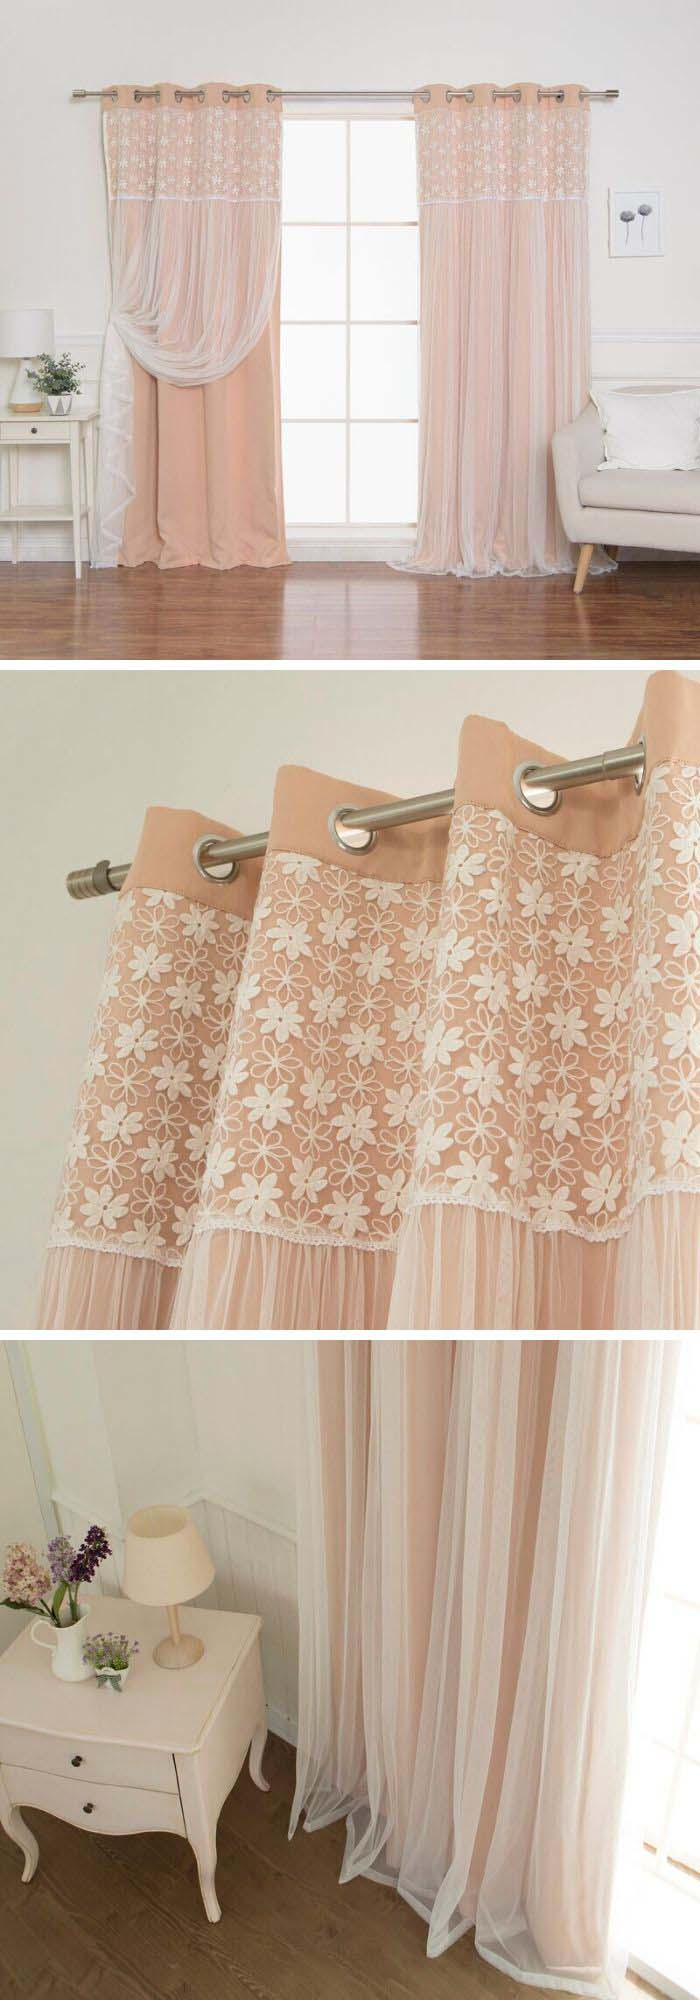 Pink Curtains With Lacing #farmhouse #windowtreatments #decorhomeideas